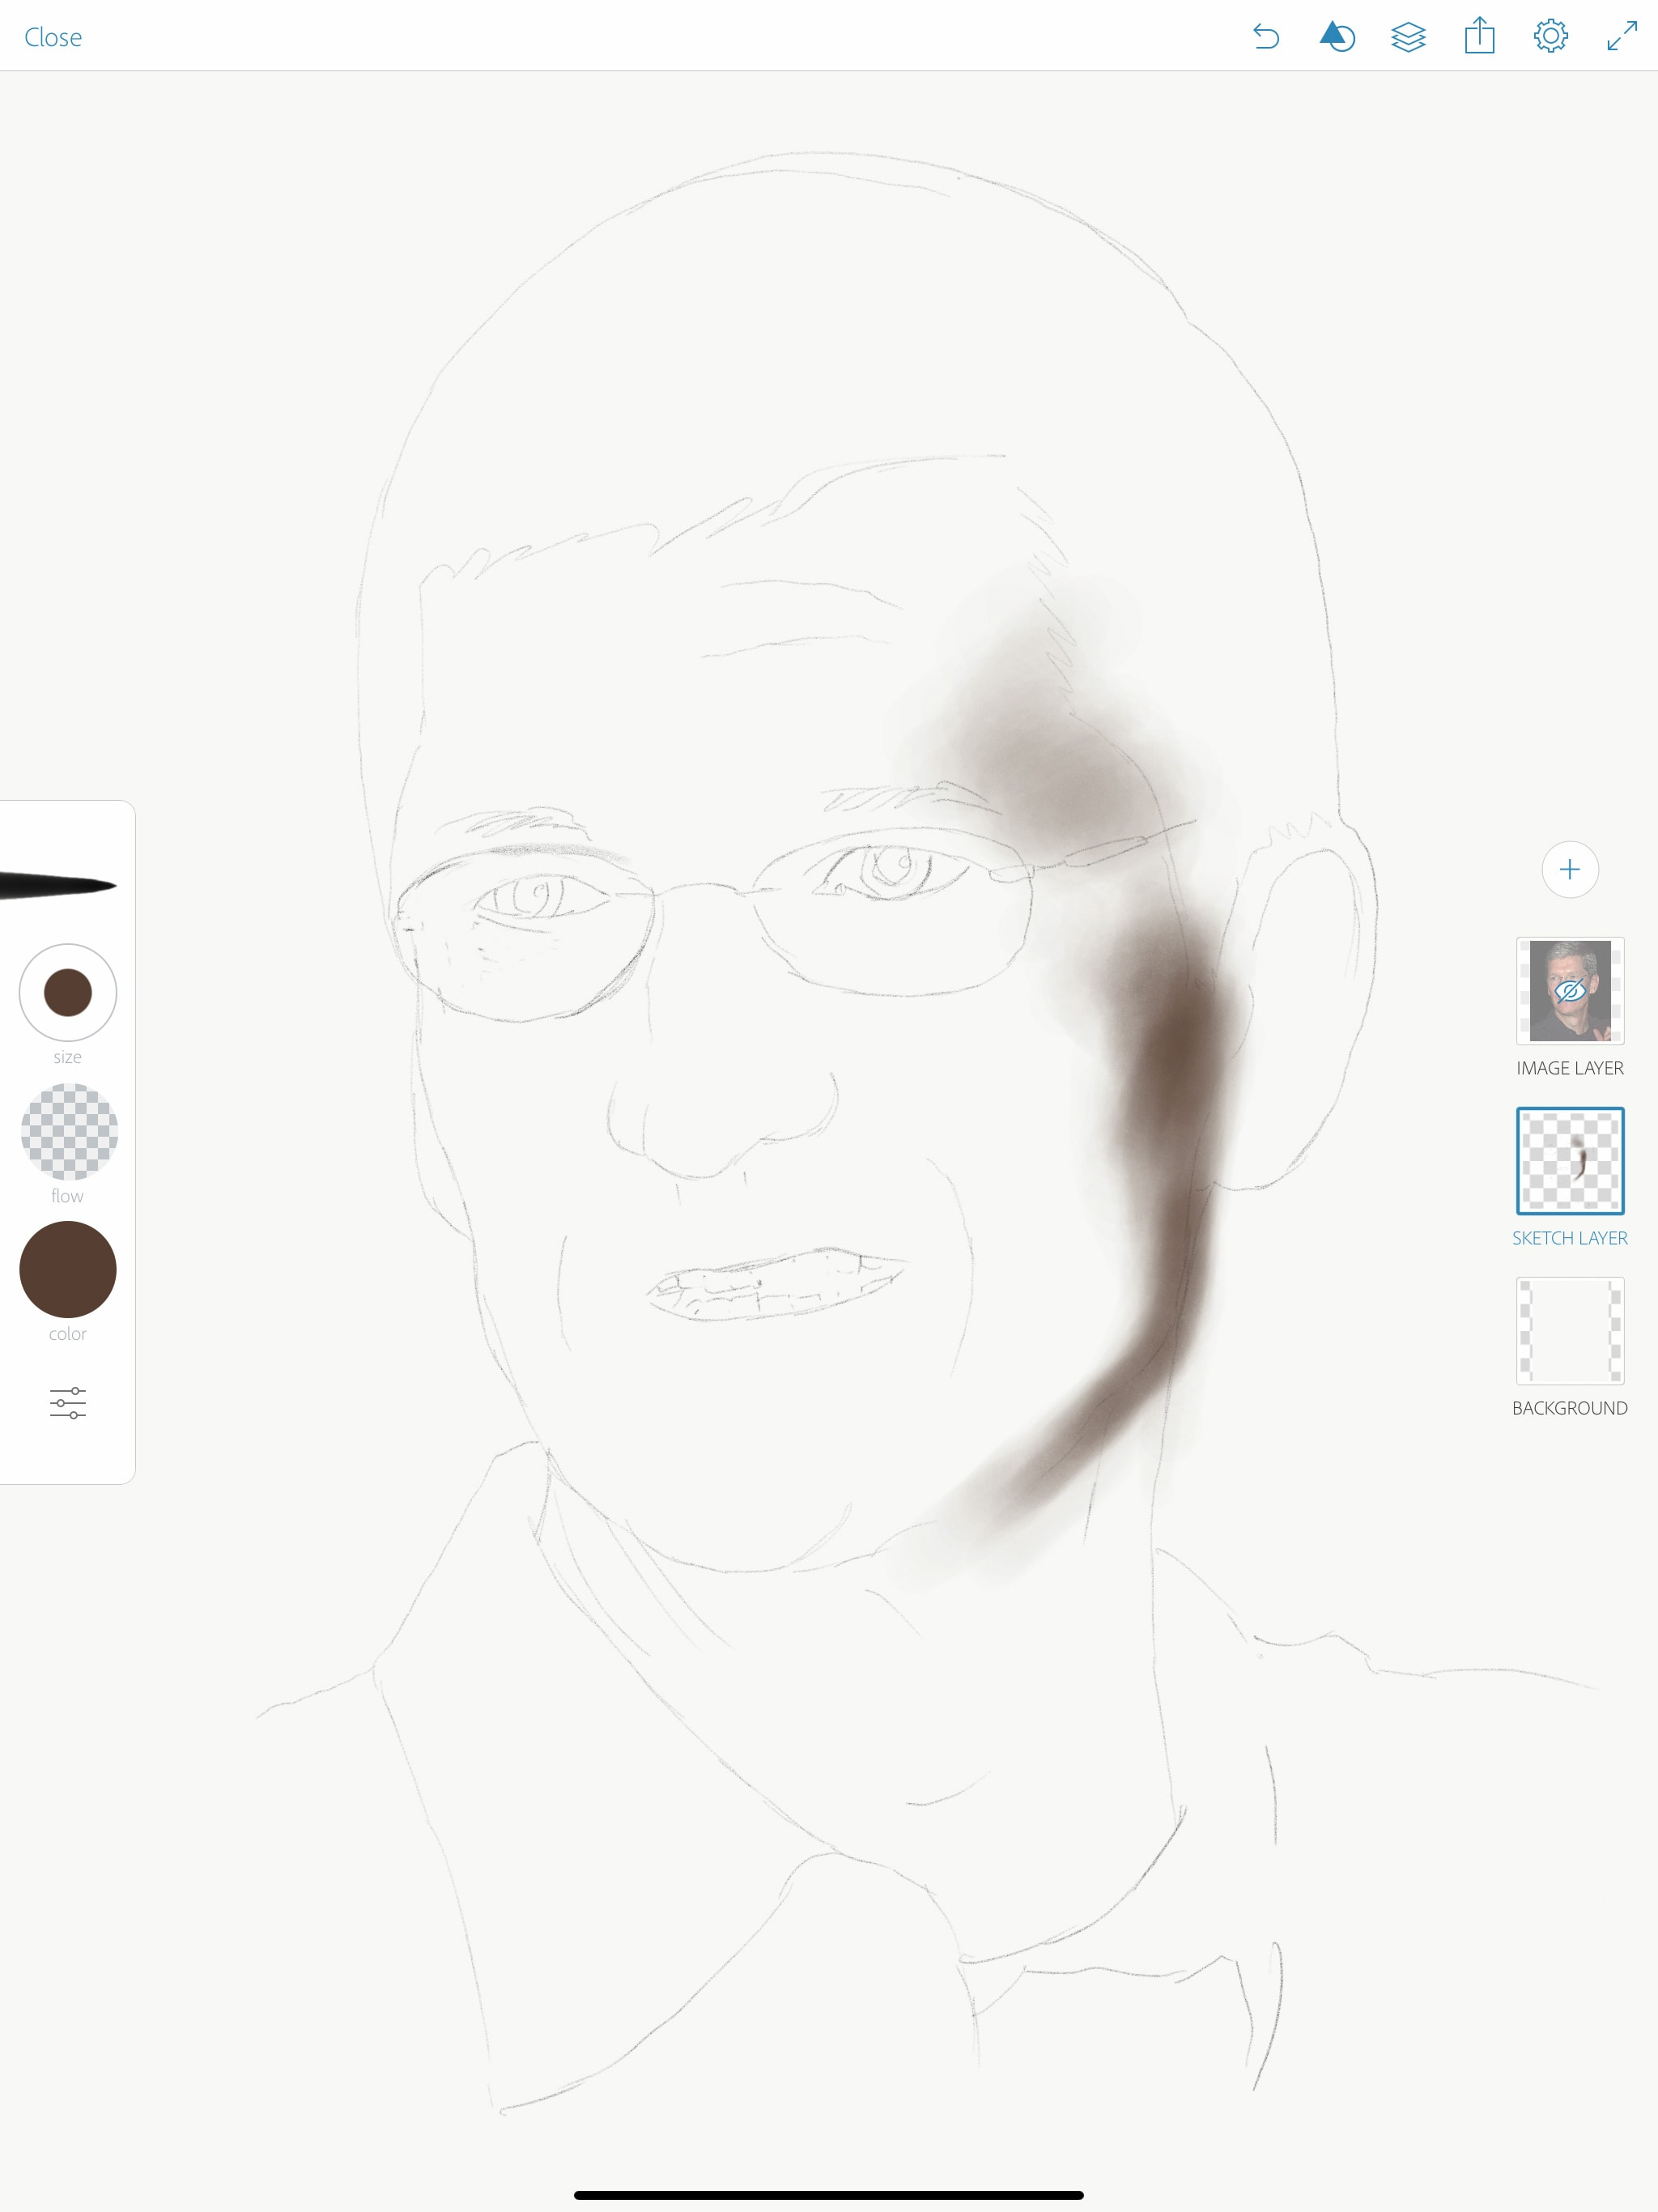 Cómo dibujar un retrato con Apple Pencil: Paso 1: traza un contorno